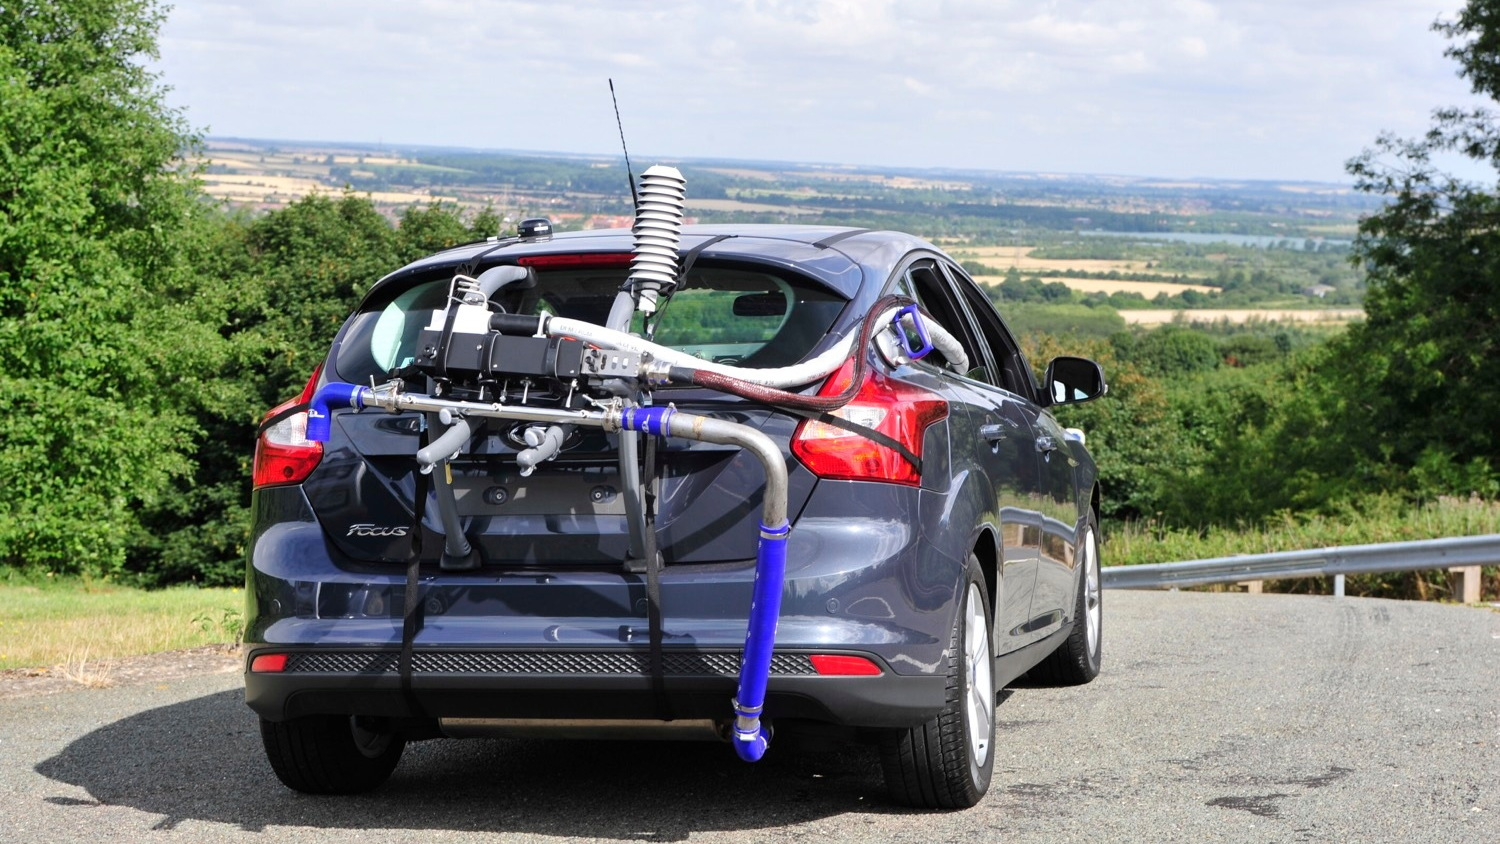 Portable Emissions Measurement System (PEMS) (Photo by Millbrook Proving Ground)